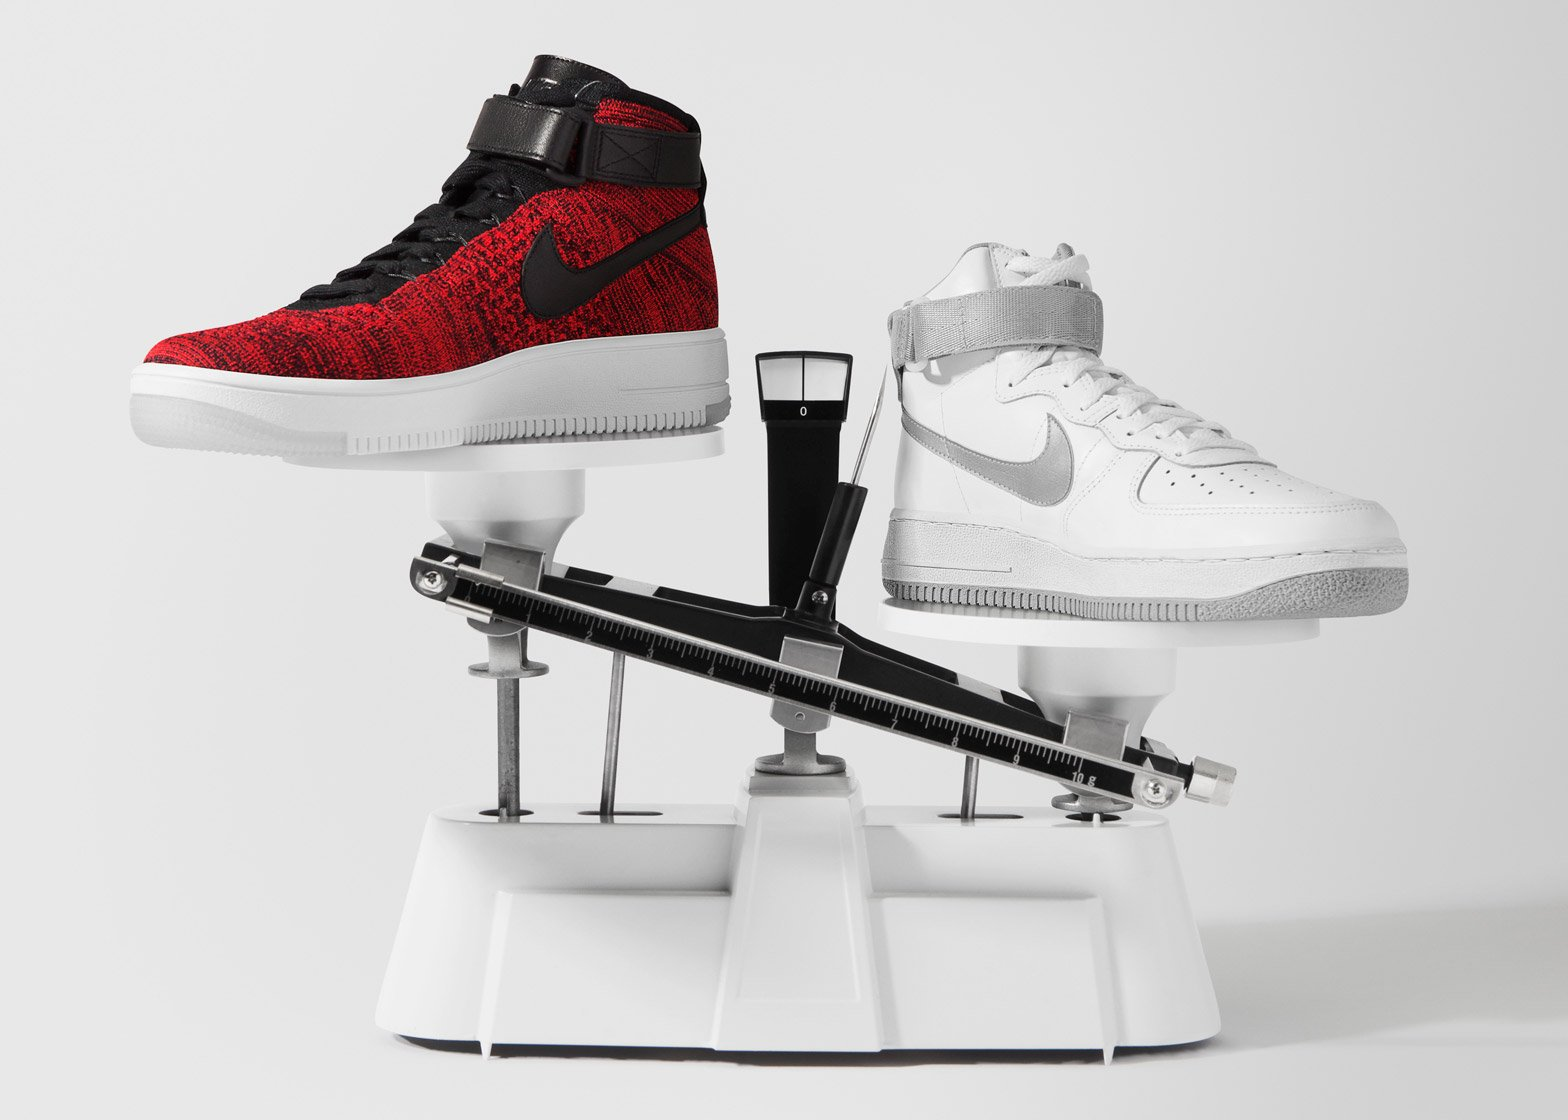 e7b28f428a75 Nike applies Flyknit material to Air Force 1 trainers